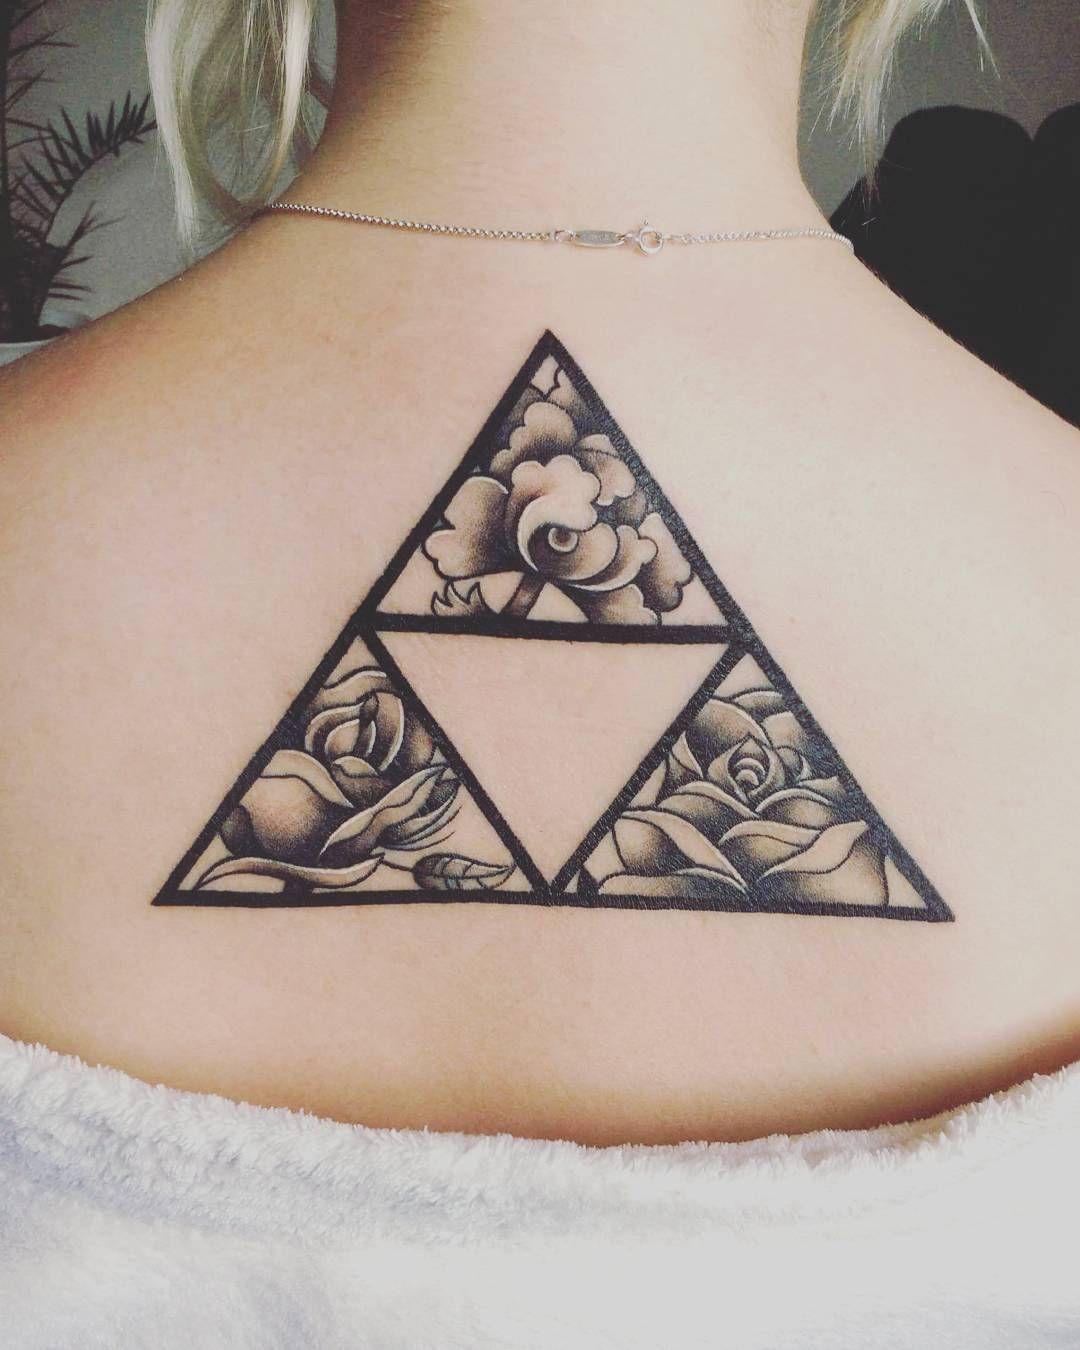 Mighty Triforce Tattoo Designs amp Meaning Discover